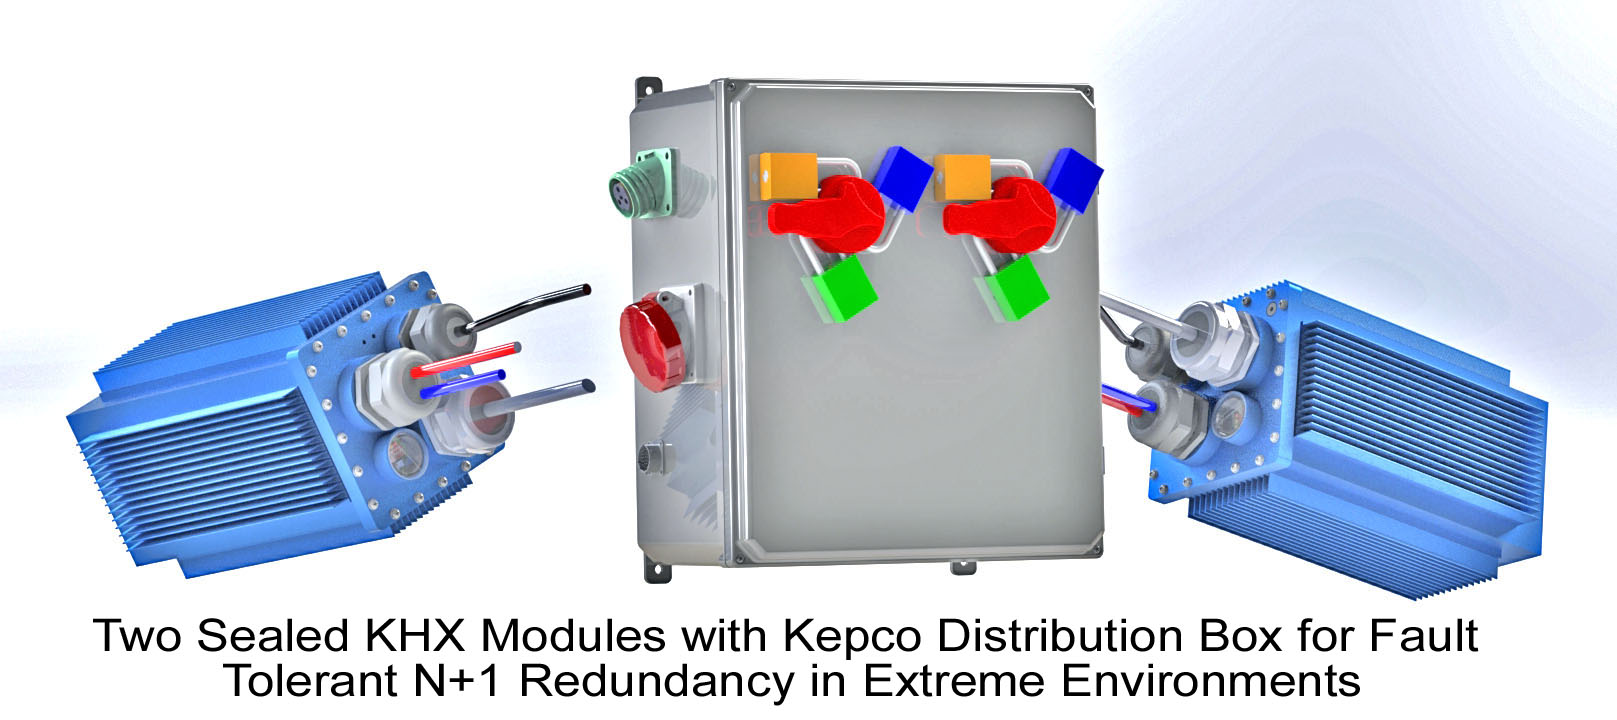 Two KHX Modules with Distribution box